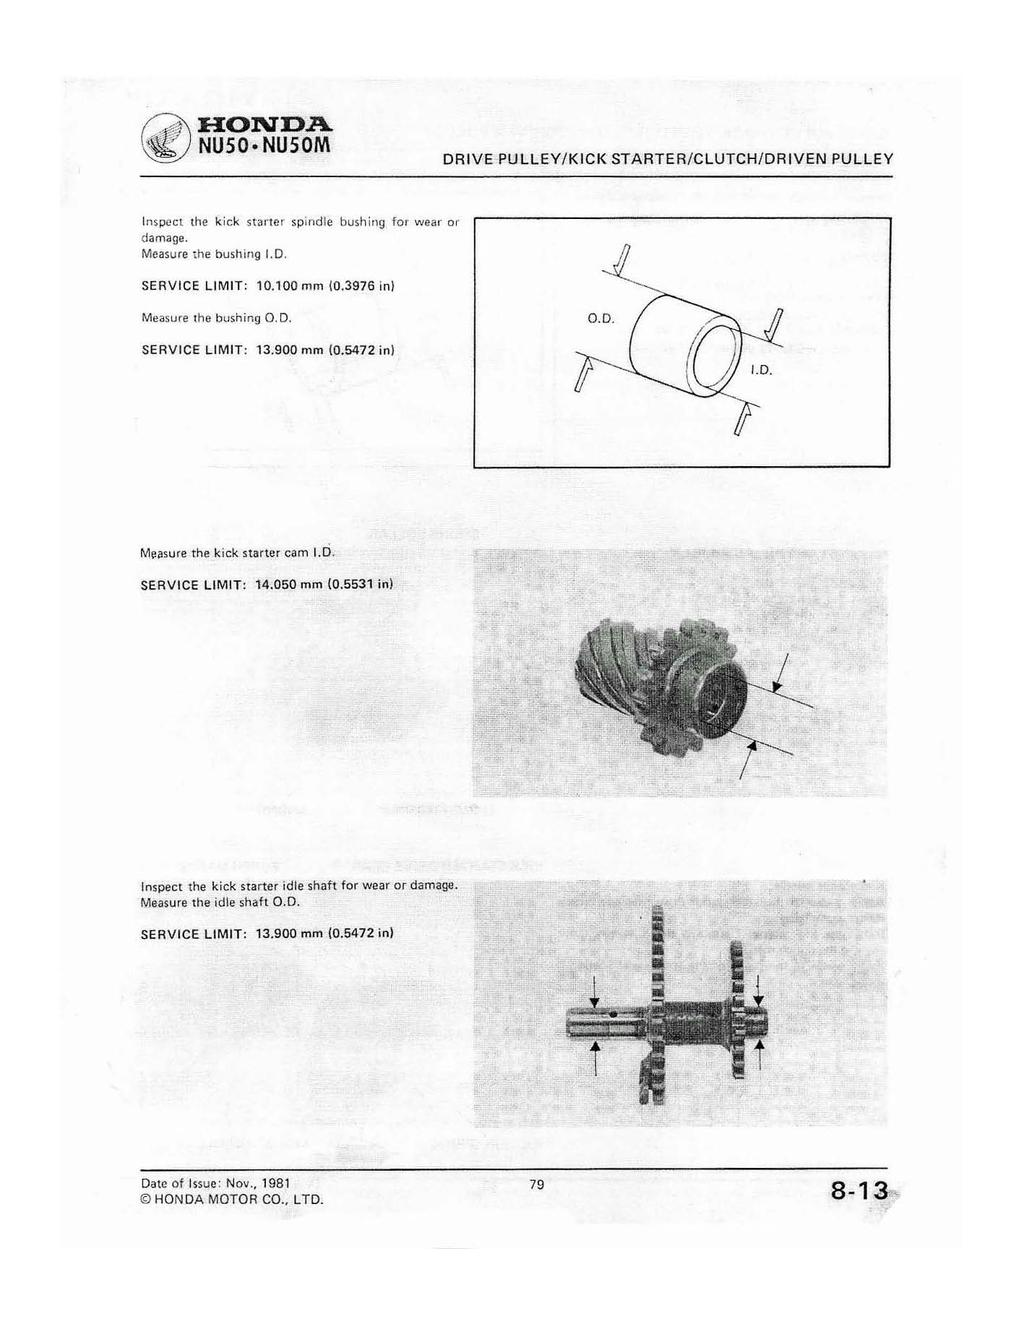 Nuso Nusom Drive And Driven Pulley Kick Starter Clutch N M Kg Ft Honda Nu50 Wiring Diagram Nu50m Inspect The